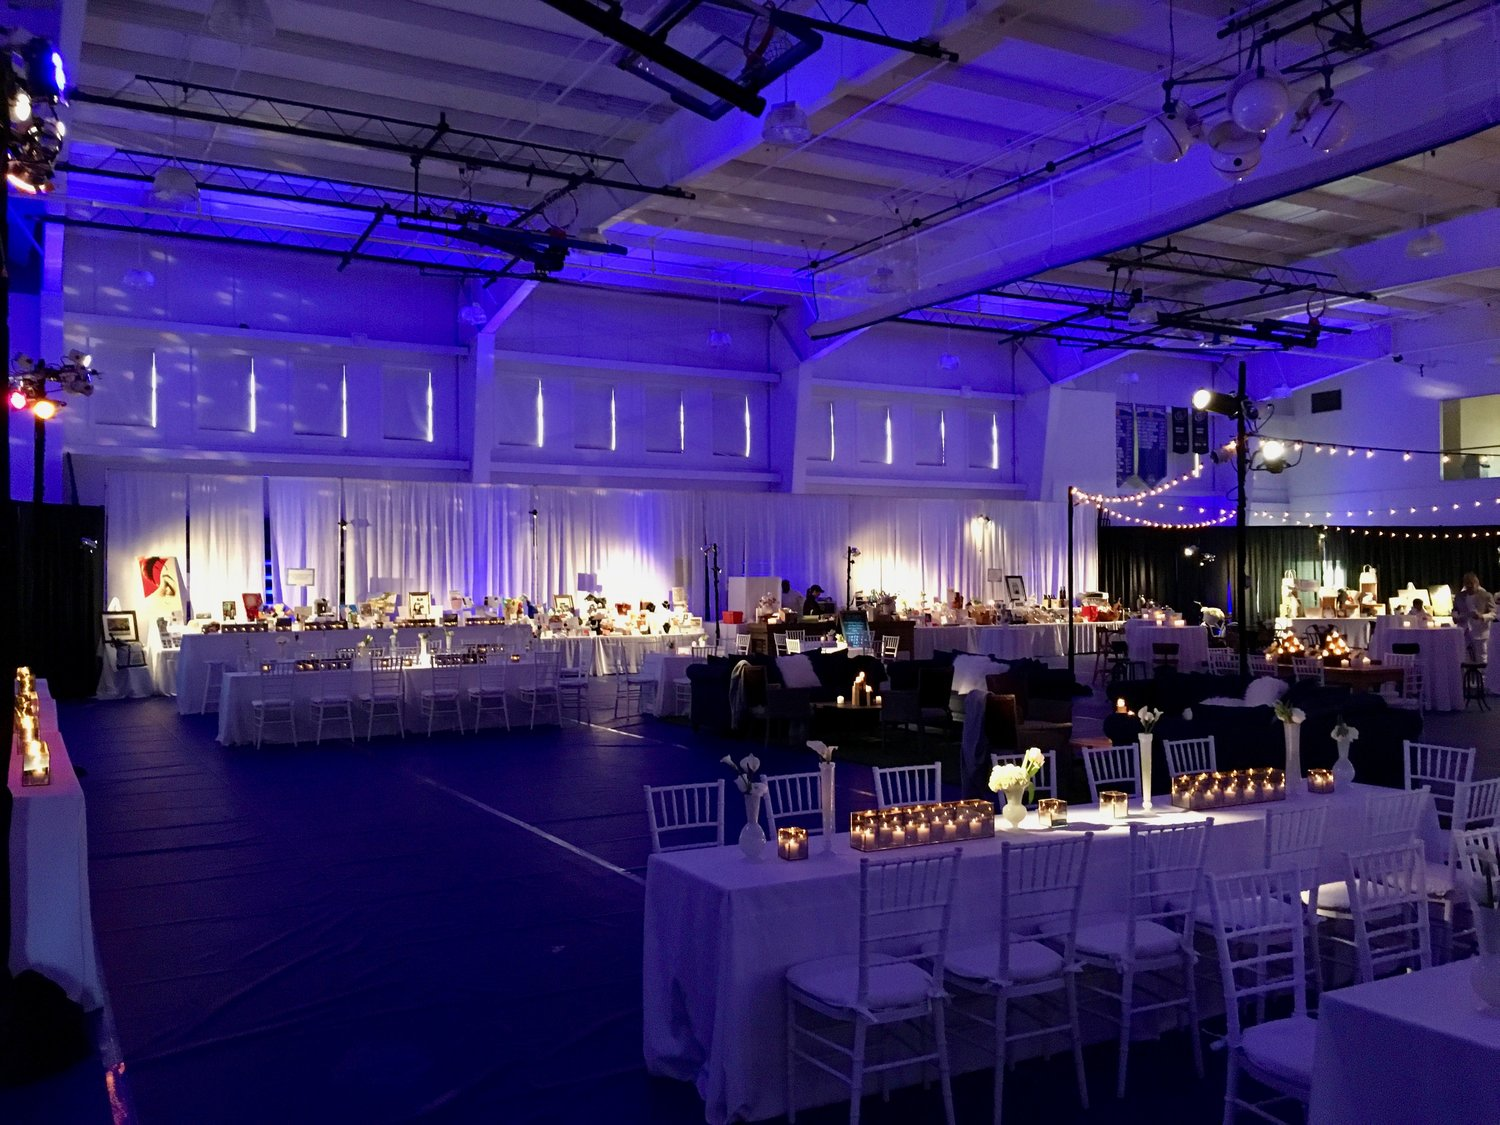 NJ+decor+design+lighting+rentals+auction+school+fundraiser+gala.jpg